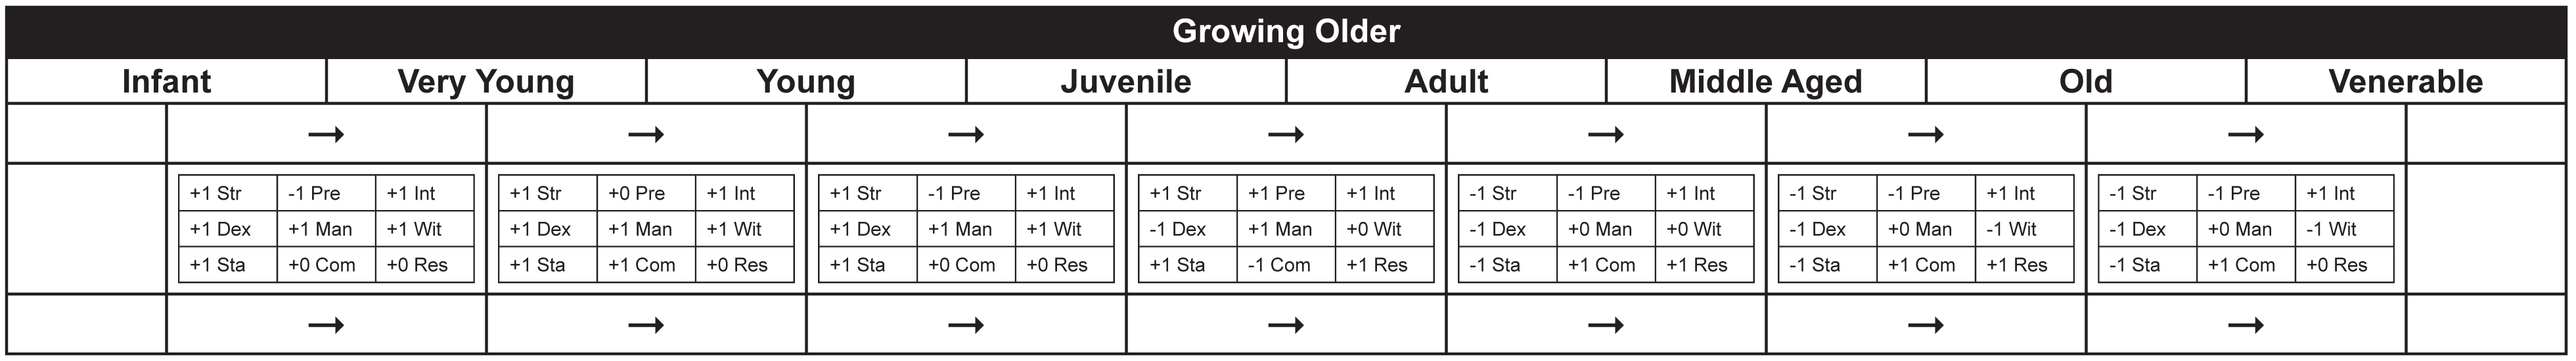 growing_older.jpg